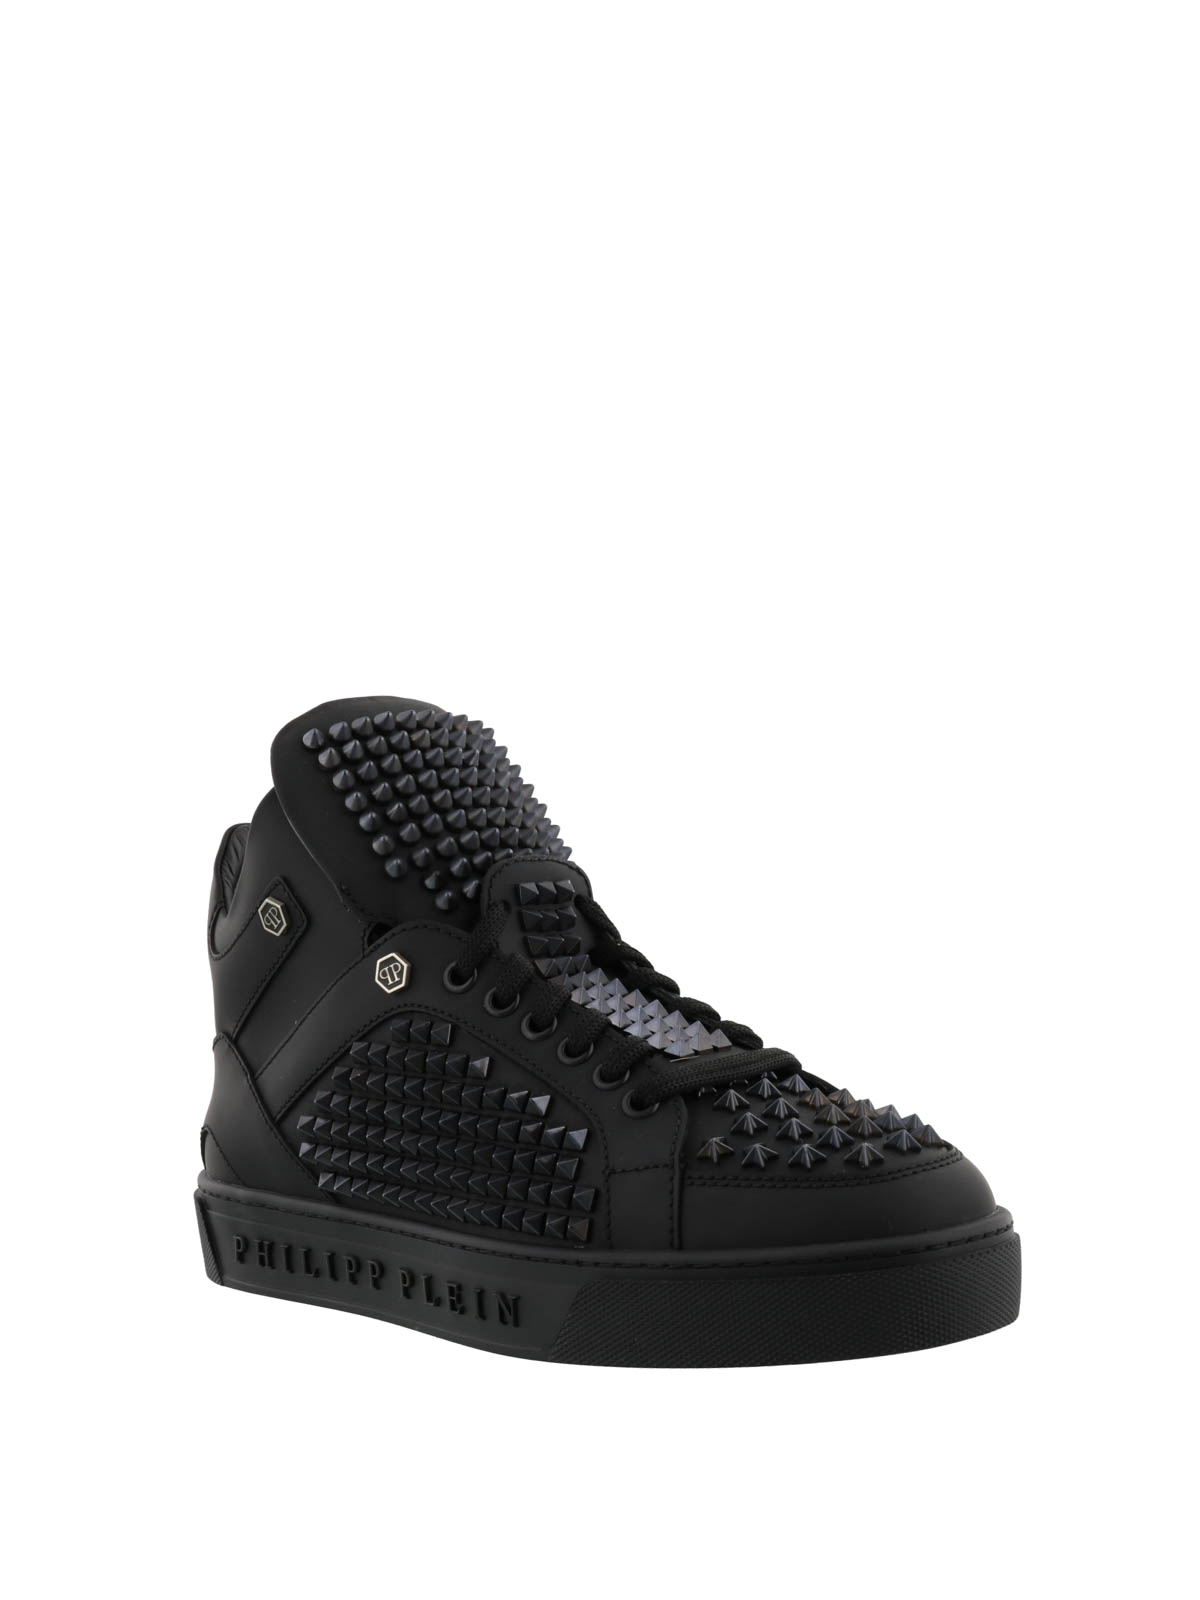 studded high top sneakers - Black Philipp Plein